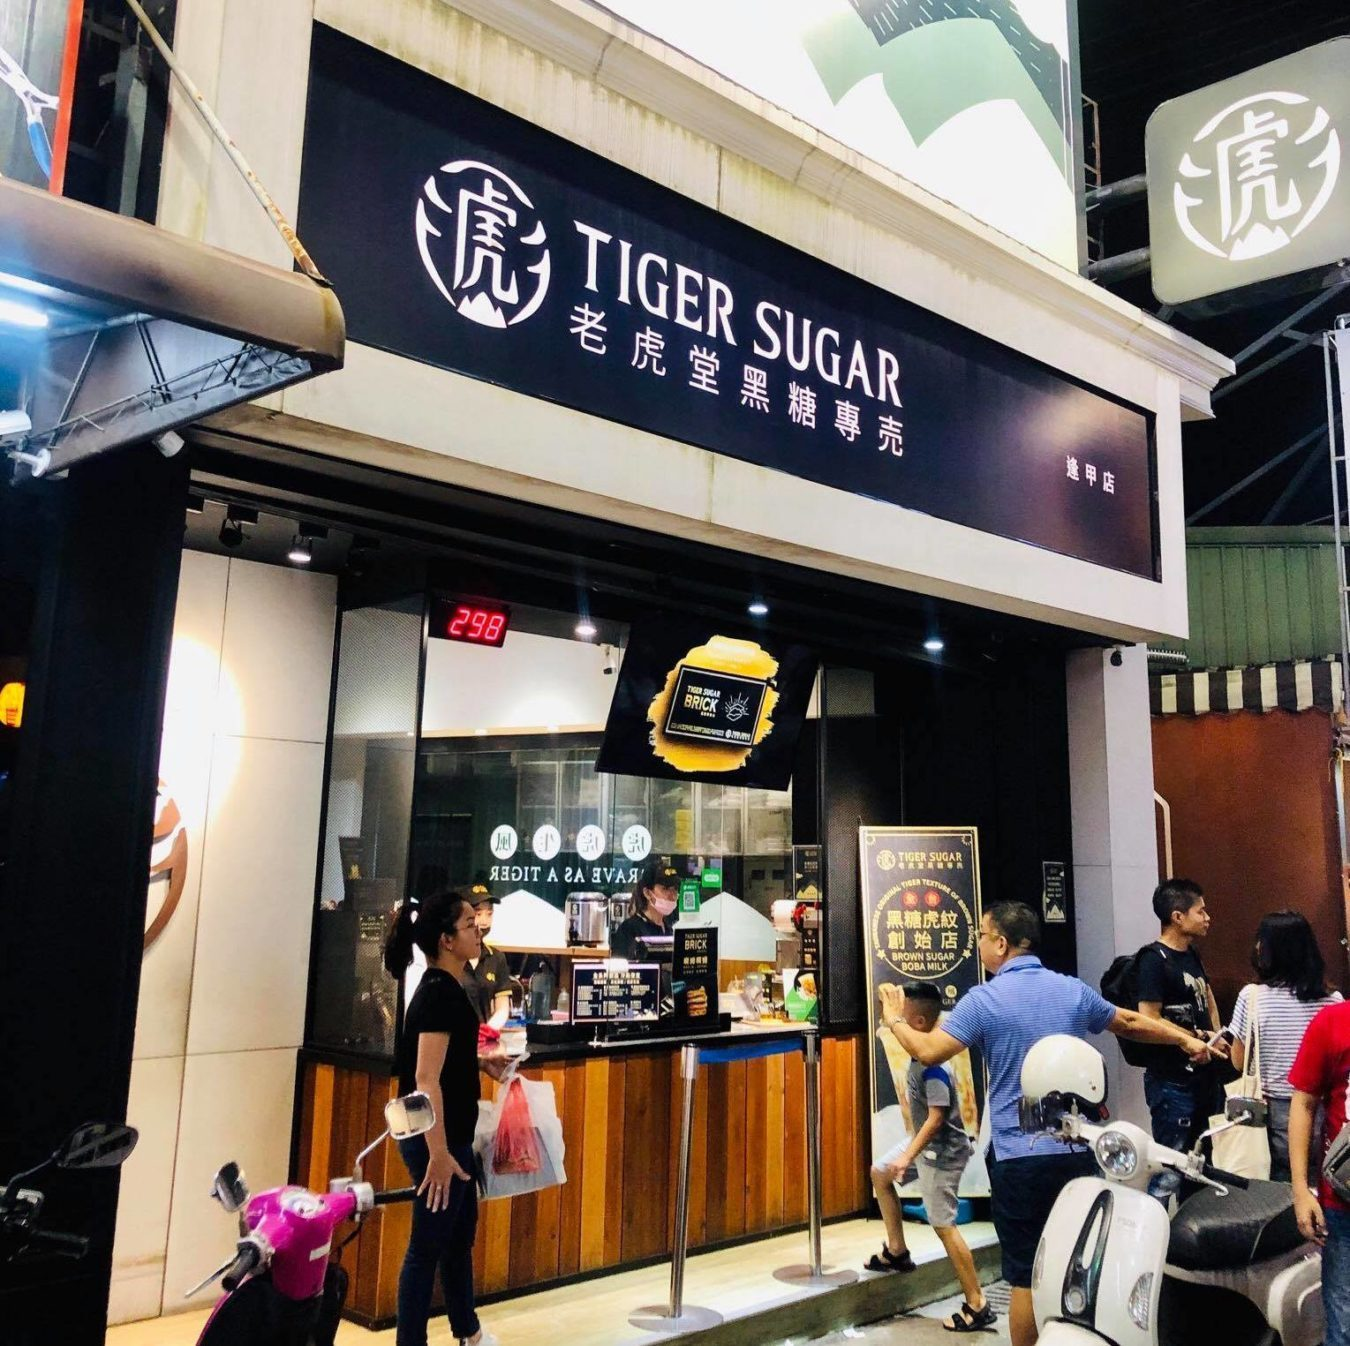 tiger sugar fengjia night market